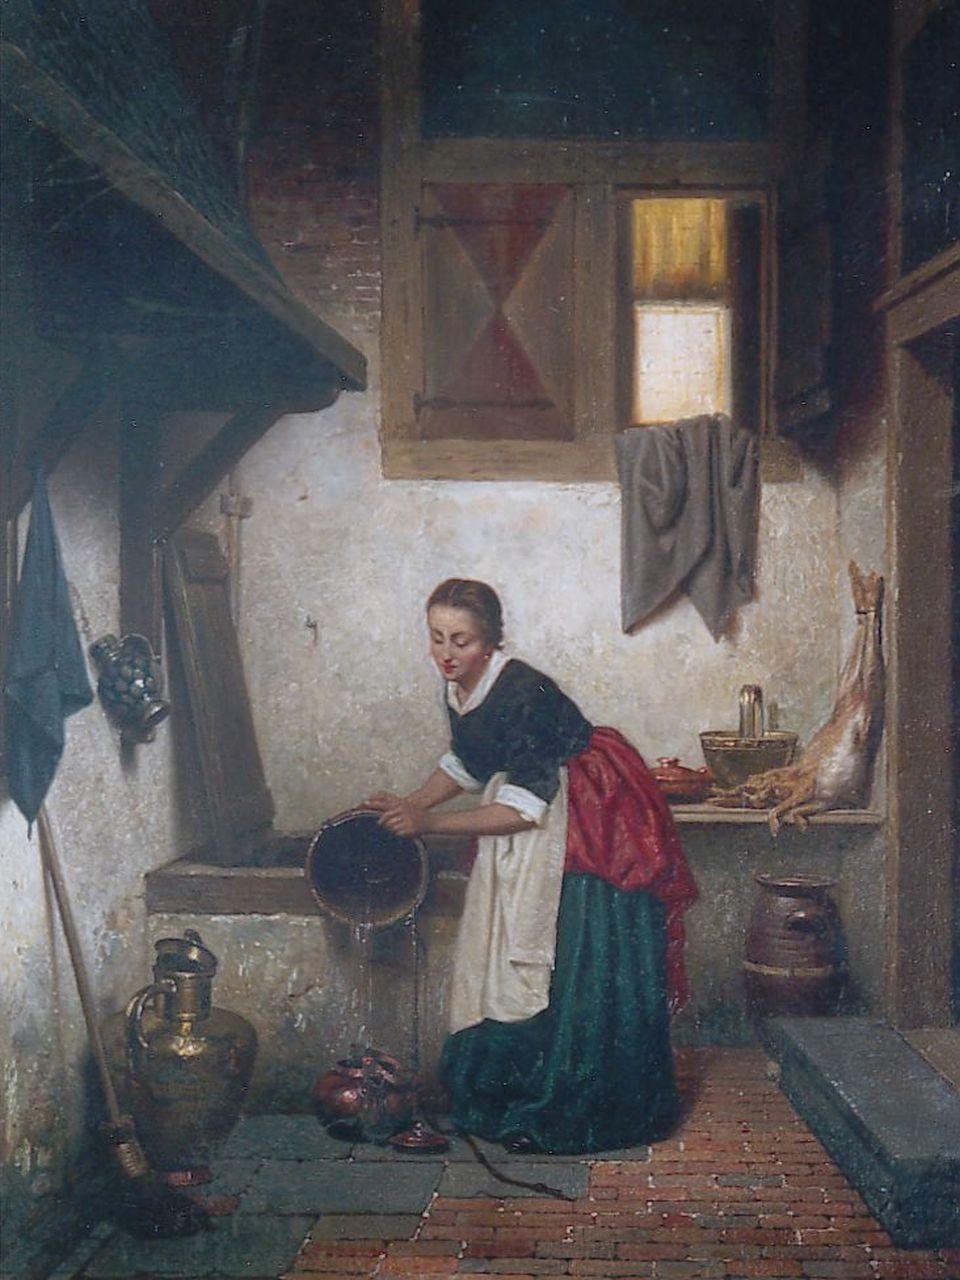 Grips C.J.  | Carel Jozeph Grips, An Kitchen Interior, oil on panel 27.3 x 21.0 cm, signed l.r. and dated 1865